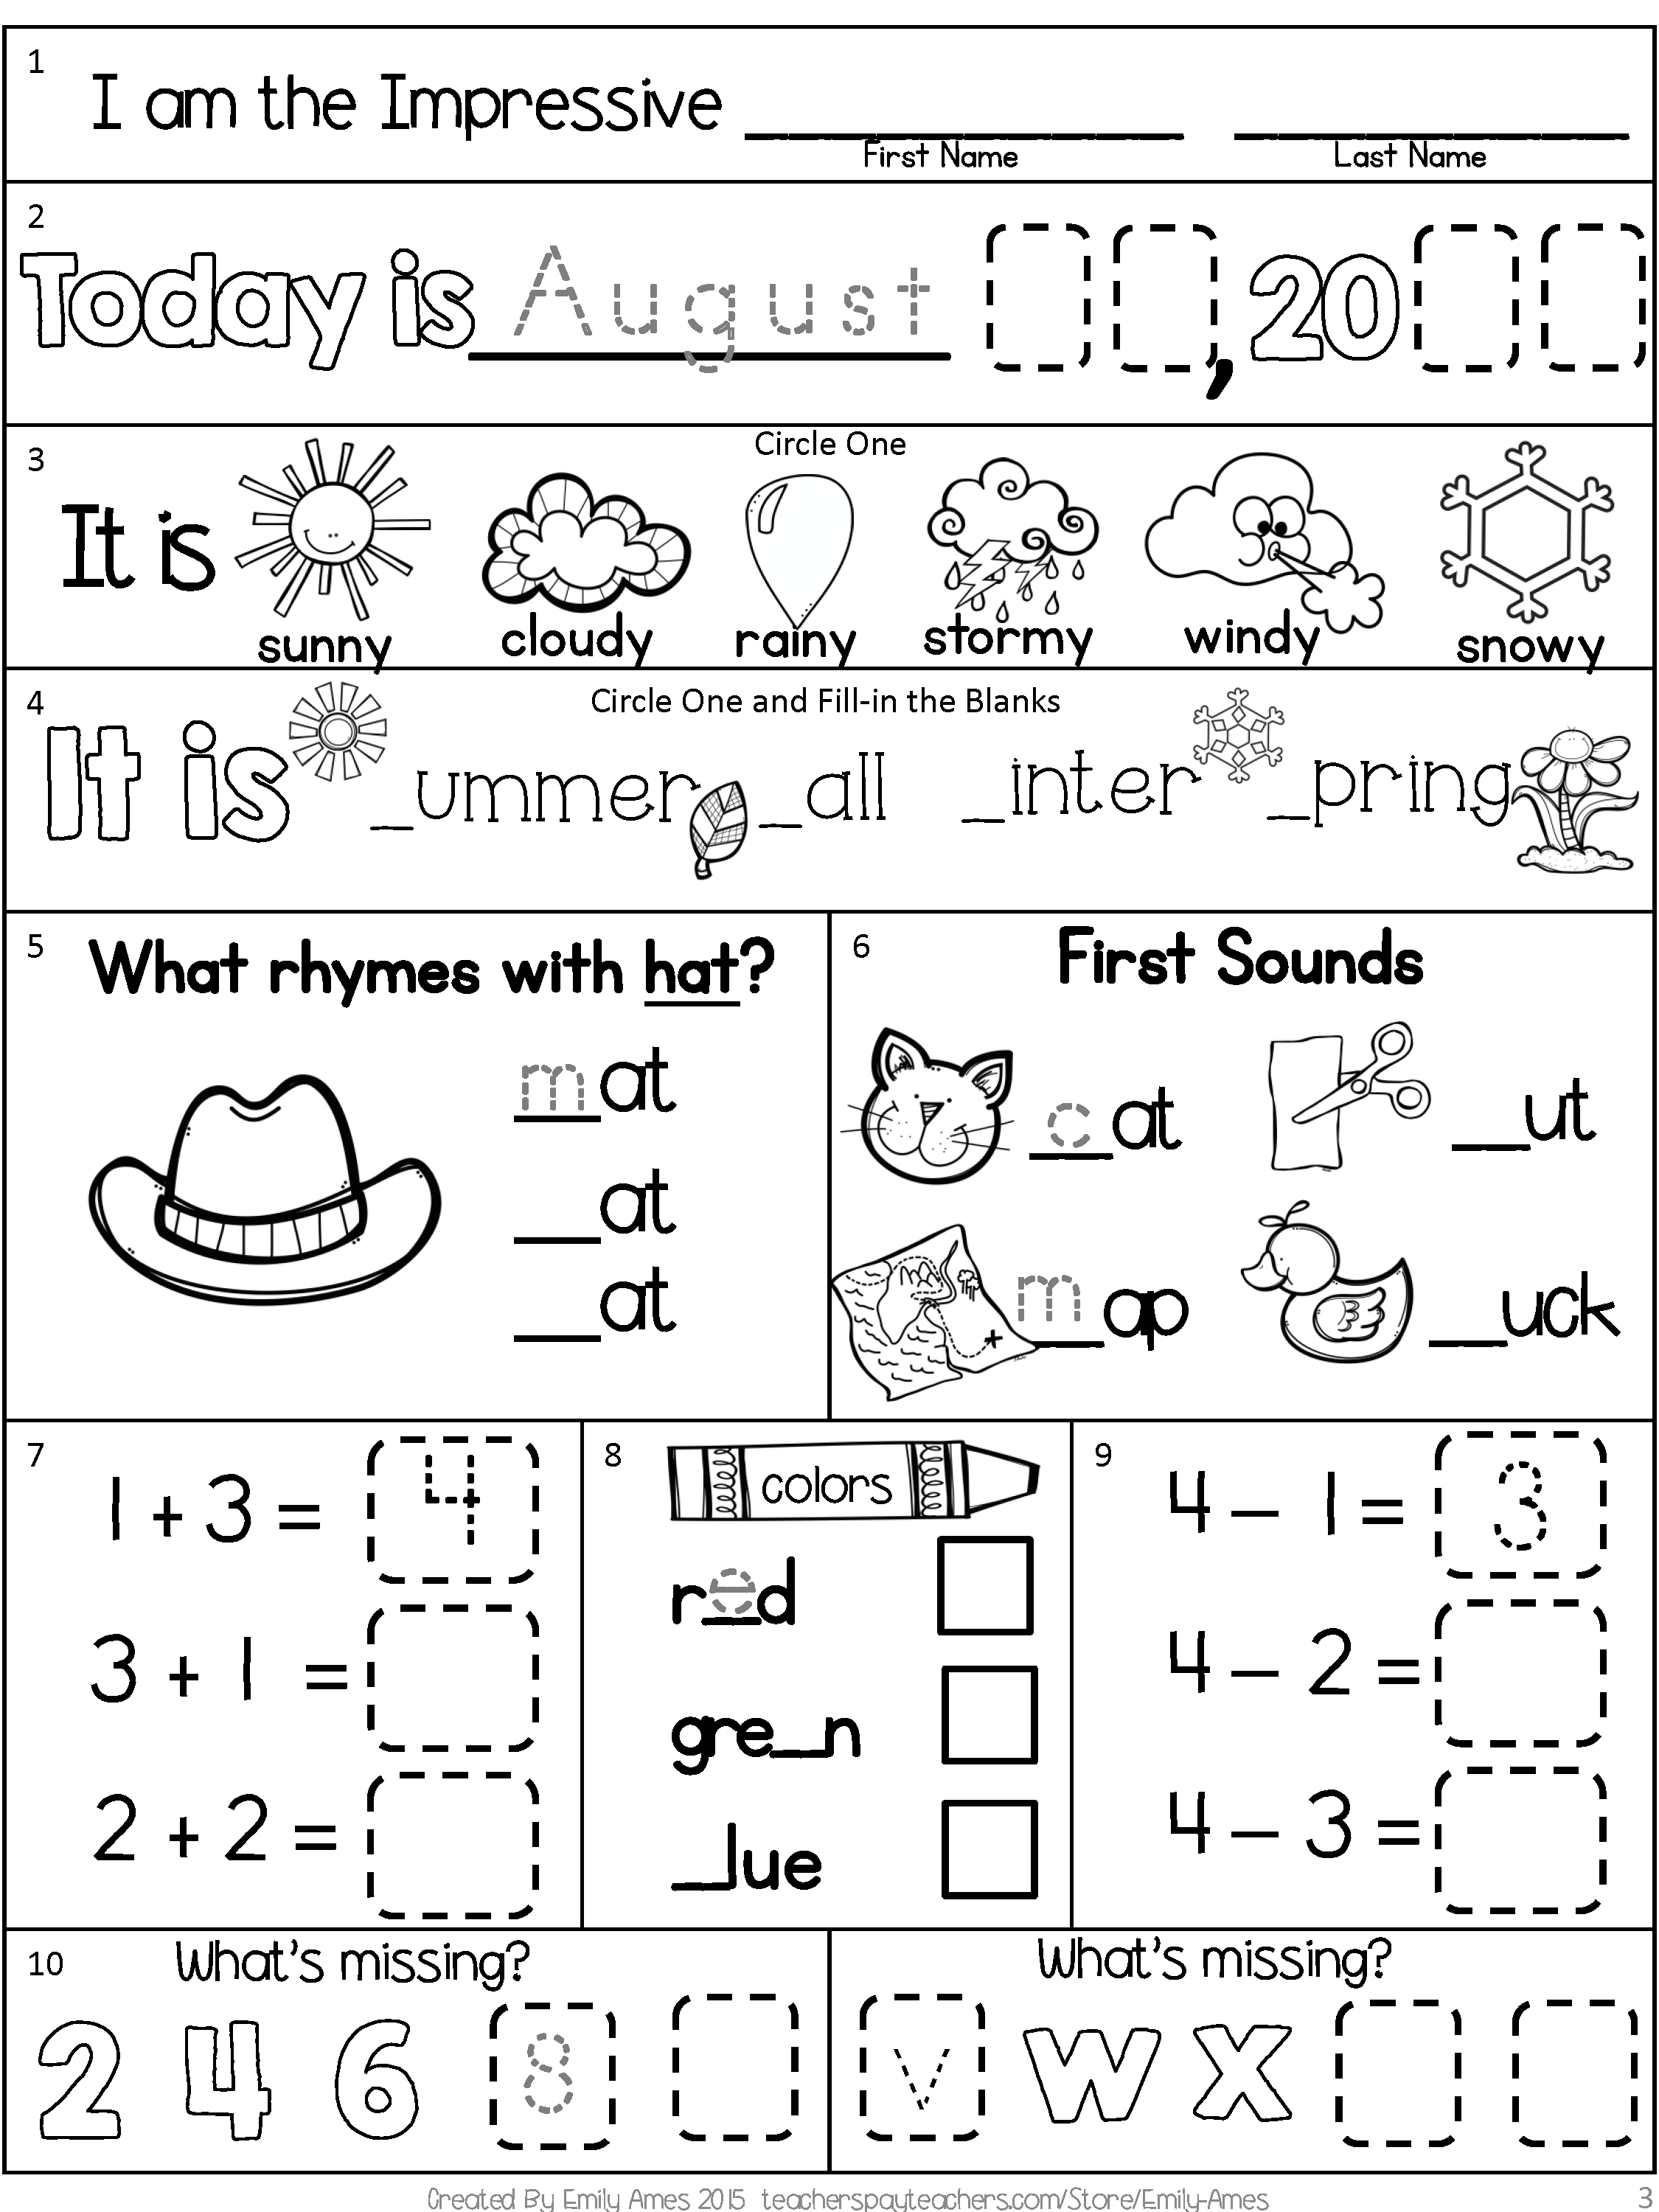 10 Trendy Back To School Ideas For First Grade first grade morning work freebie for back to school beginning of the 2021